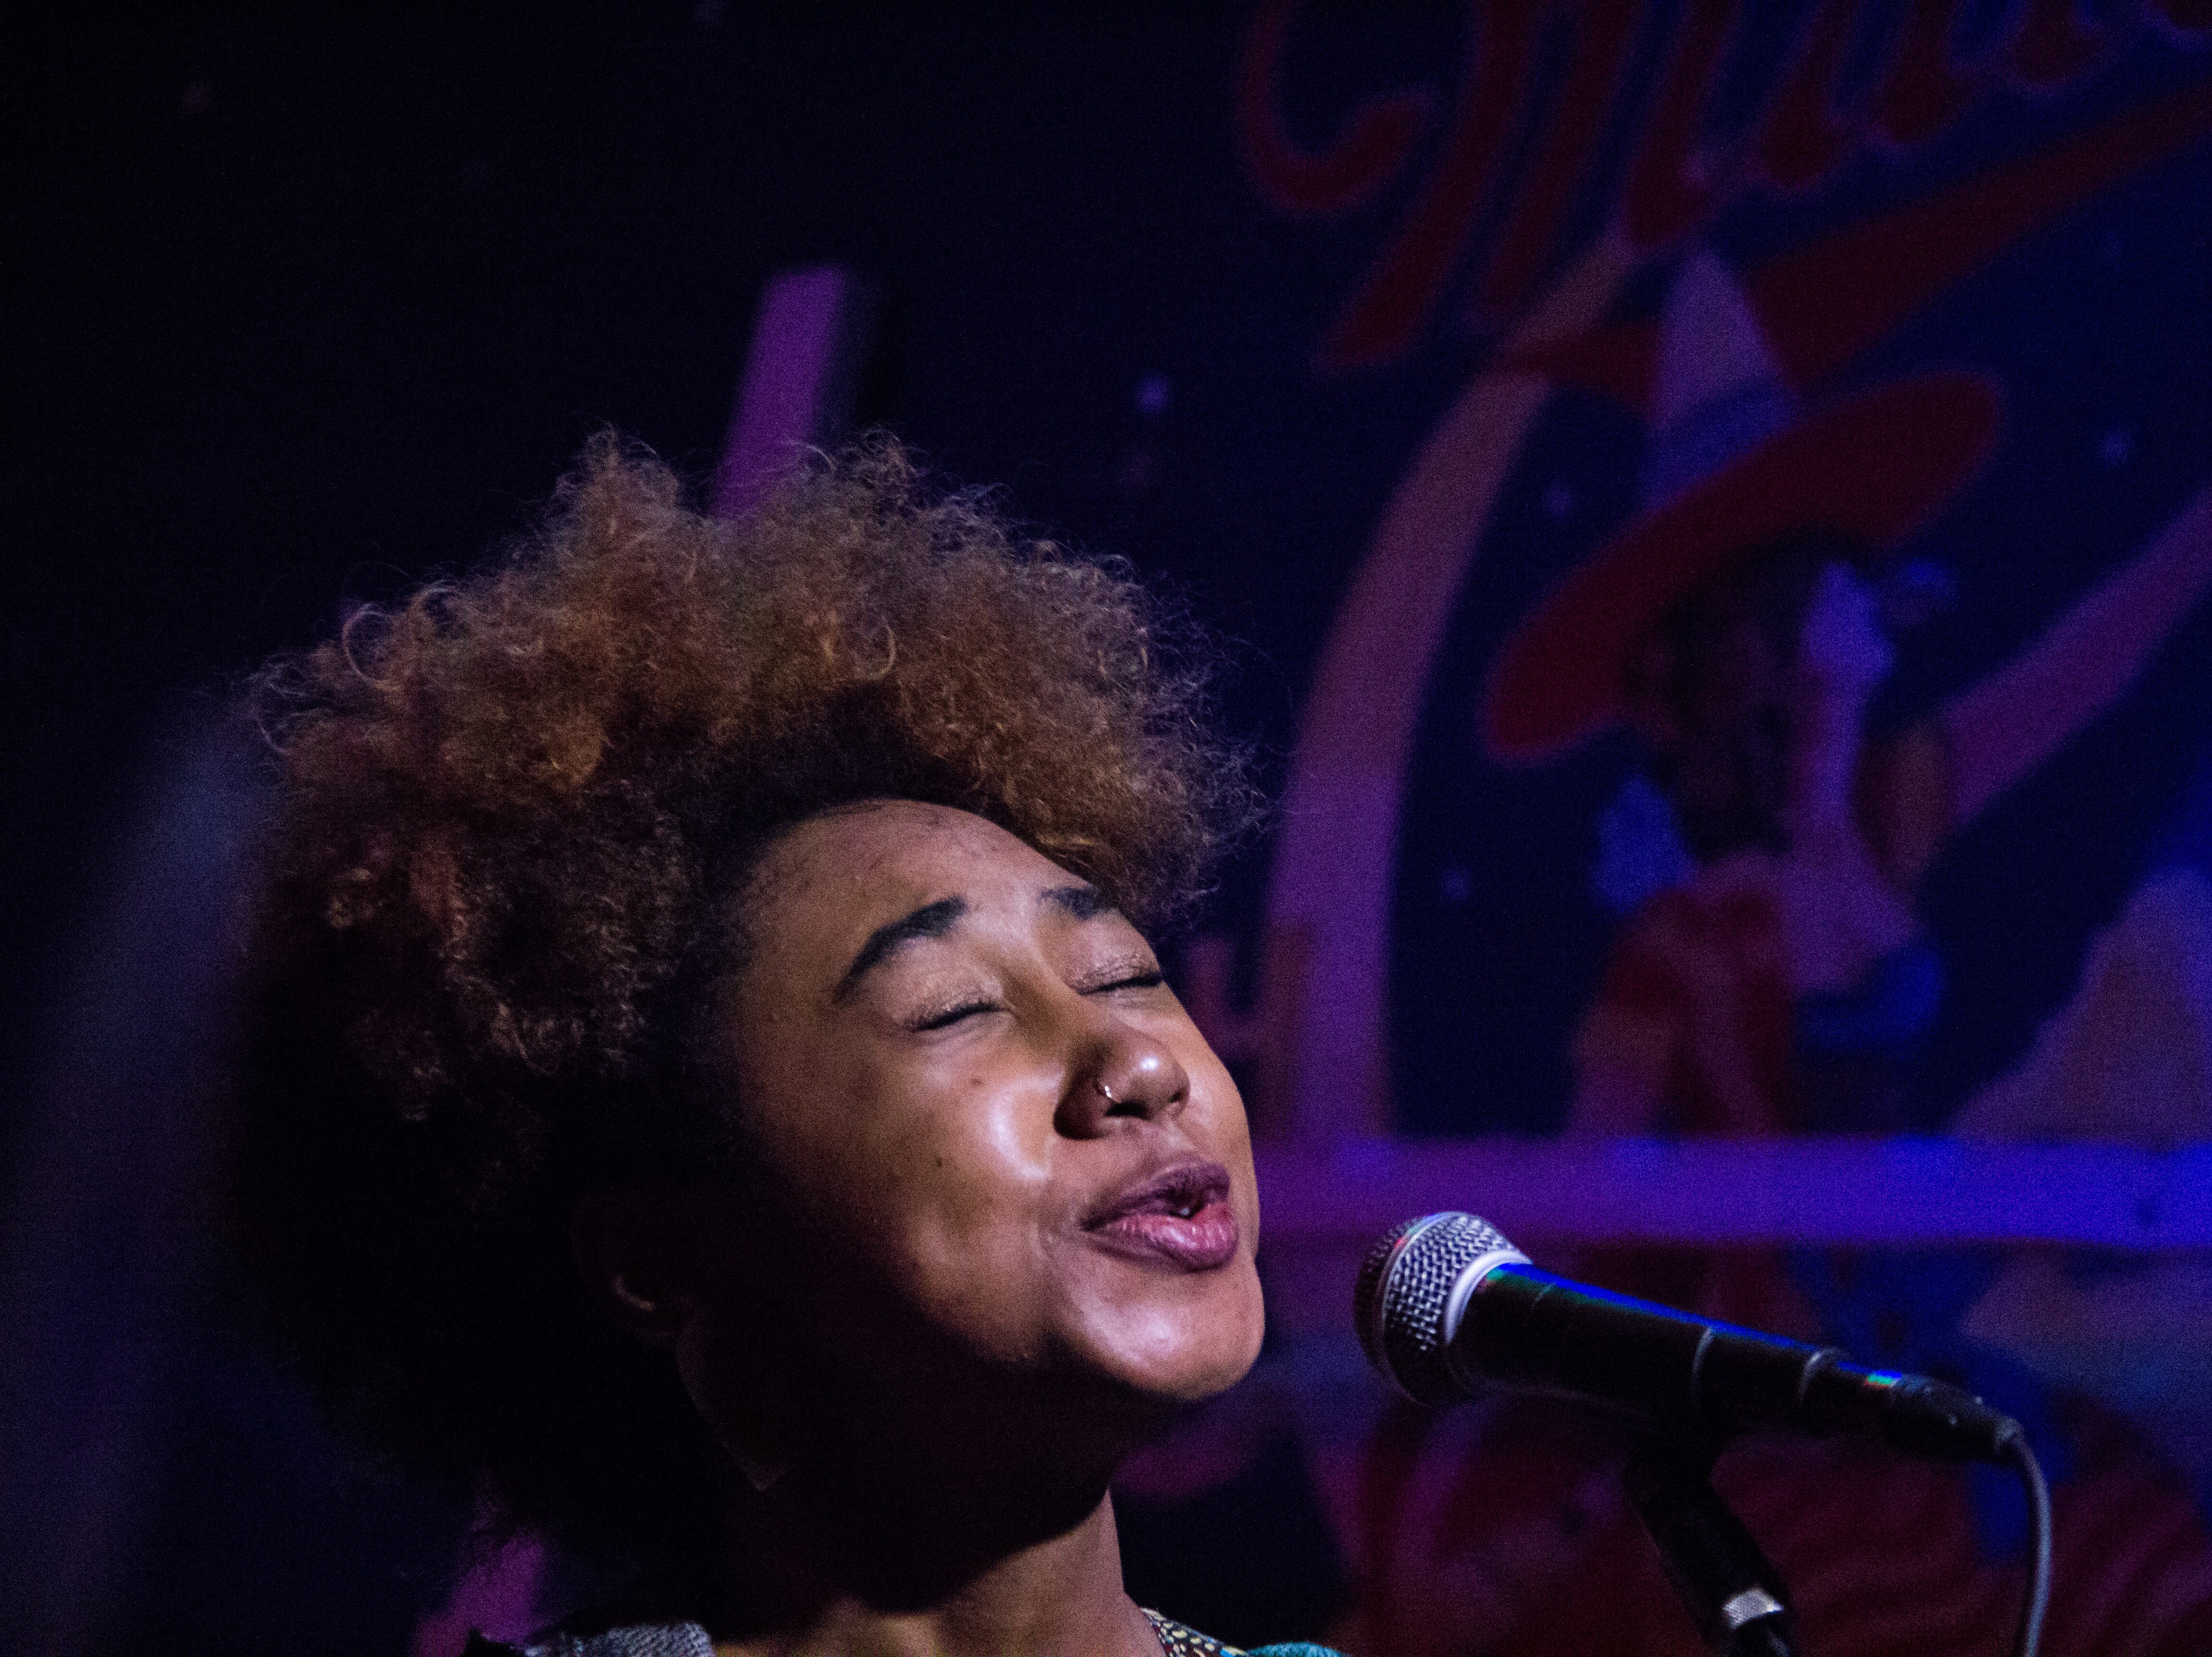 Daje Morris performs at Barley's in Knoxville during a Rhythm N' Blooms headliner reveal party Nov. 27, 2018.